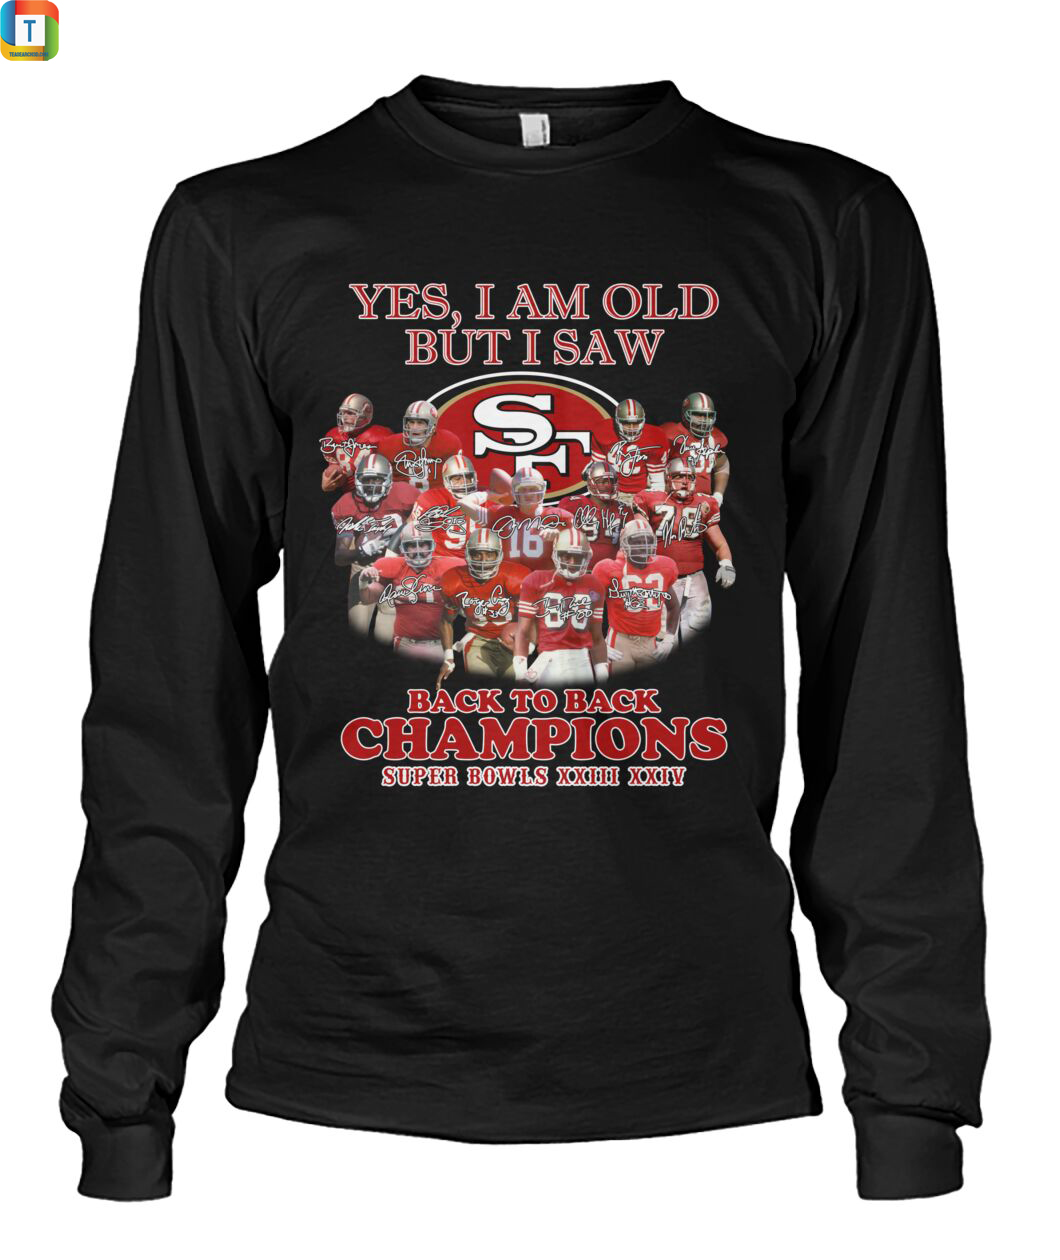 Yes I am old but I saw San Francisco 49ers back to back champions long sleeve